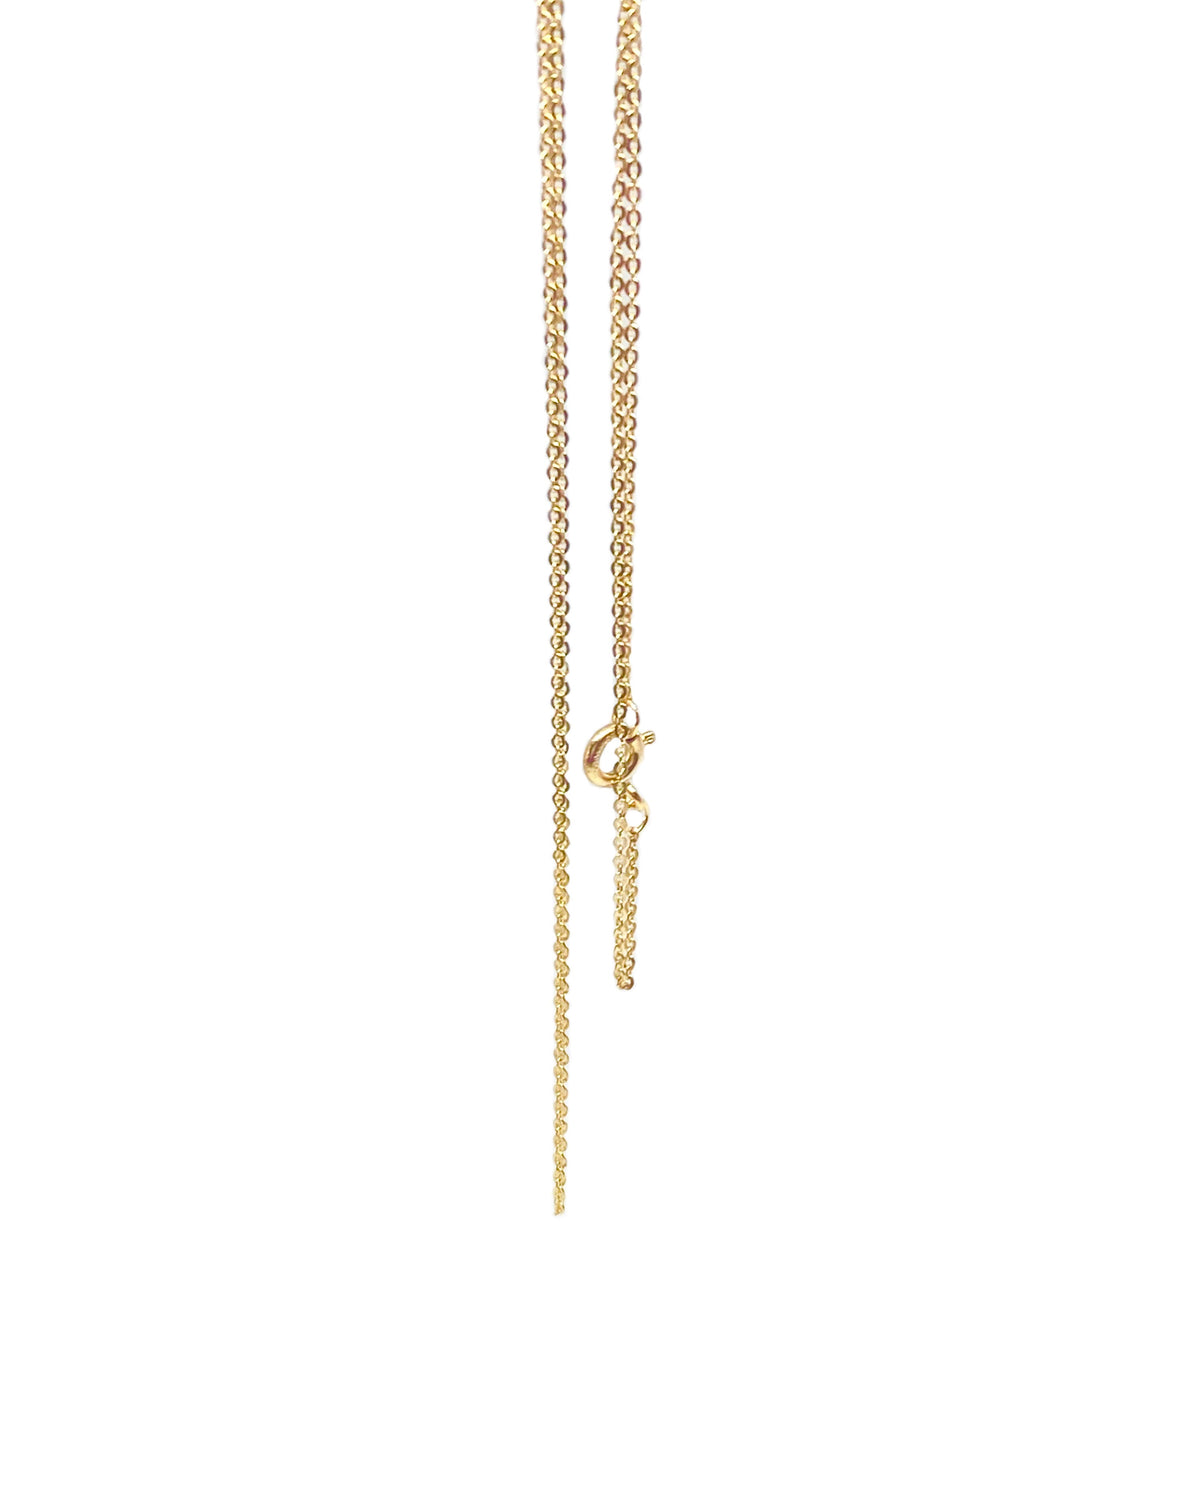 THIN FLAT CABLE CHAIN NECKLACE